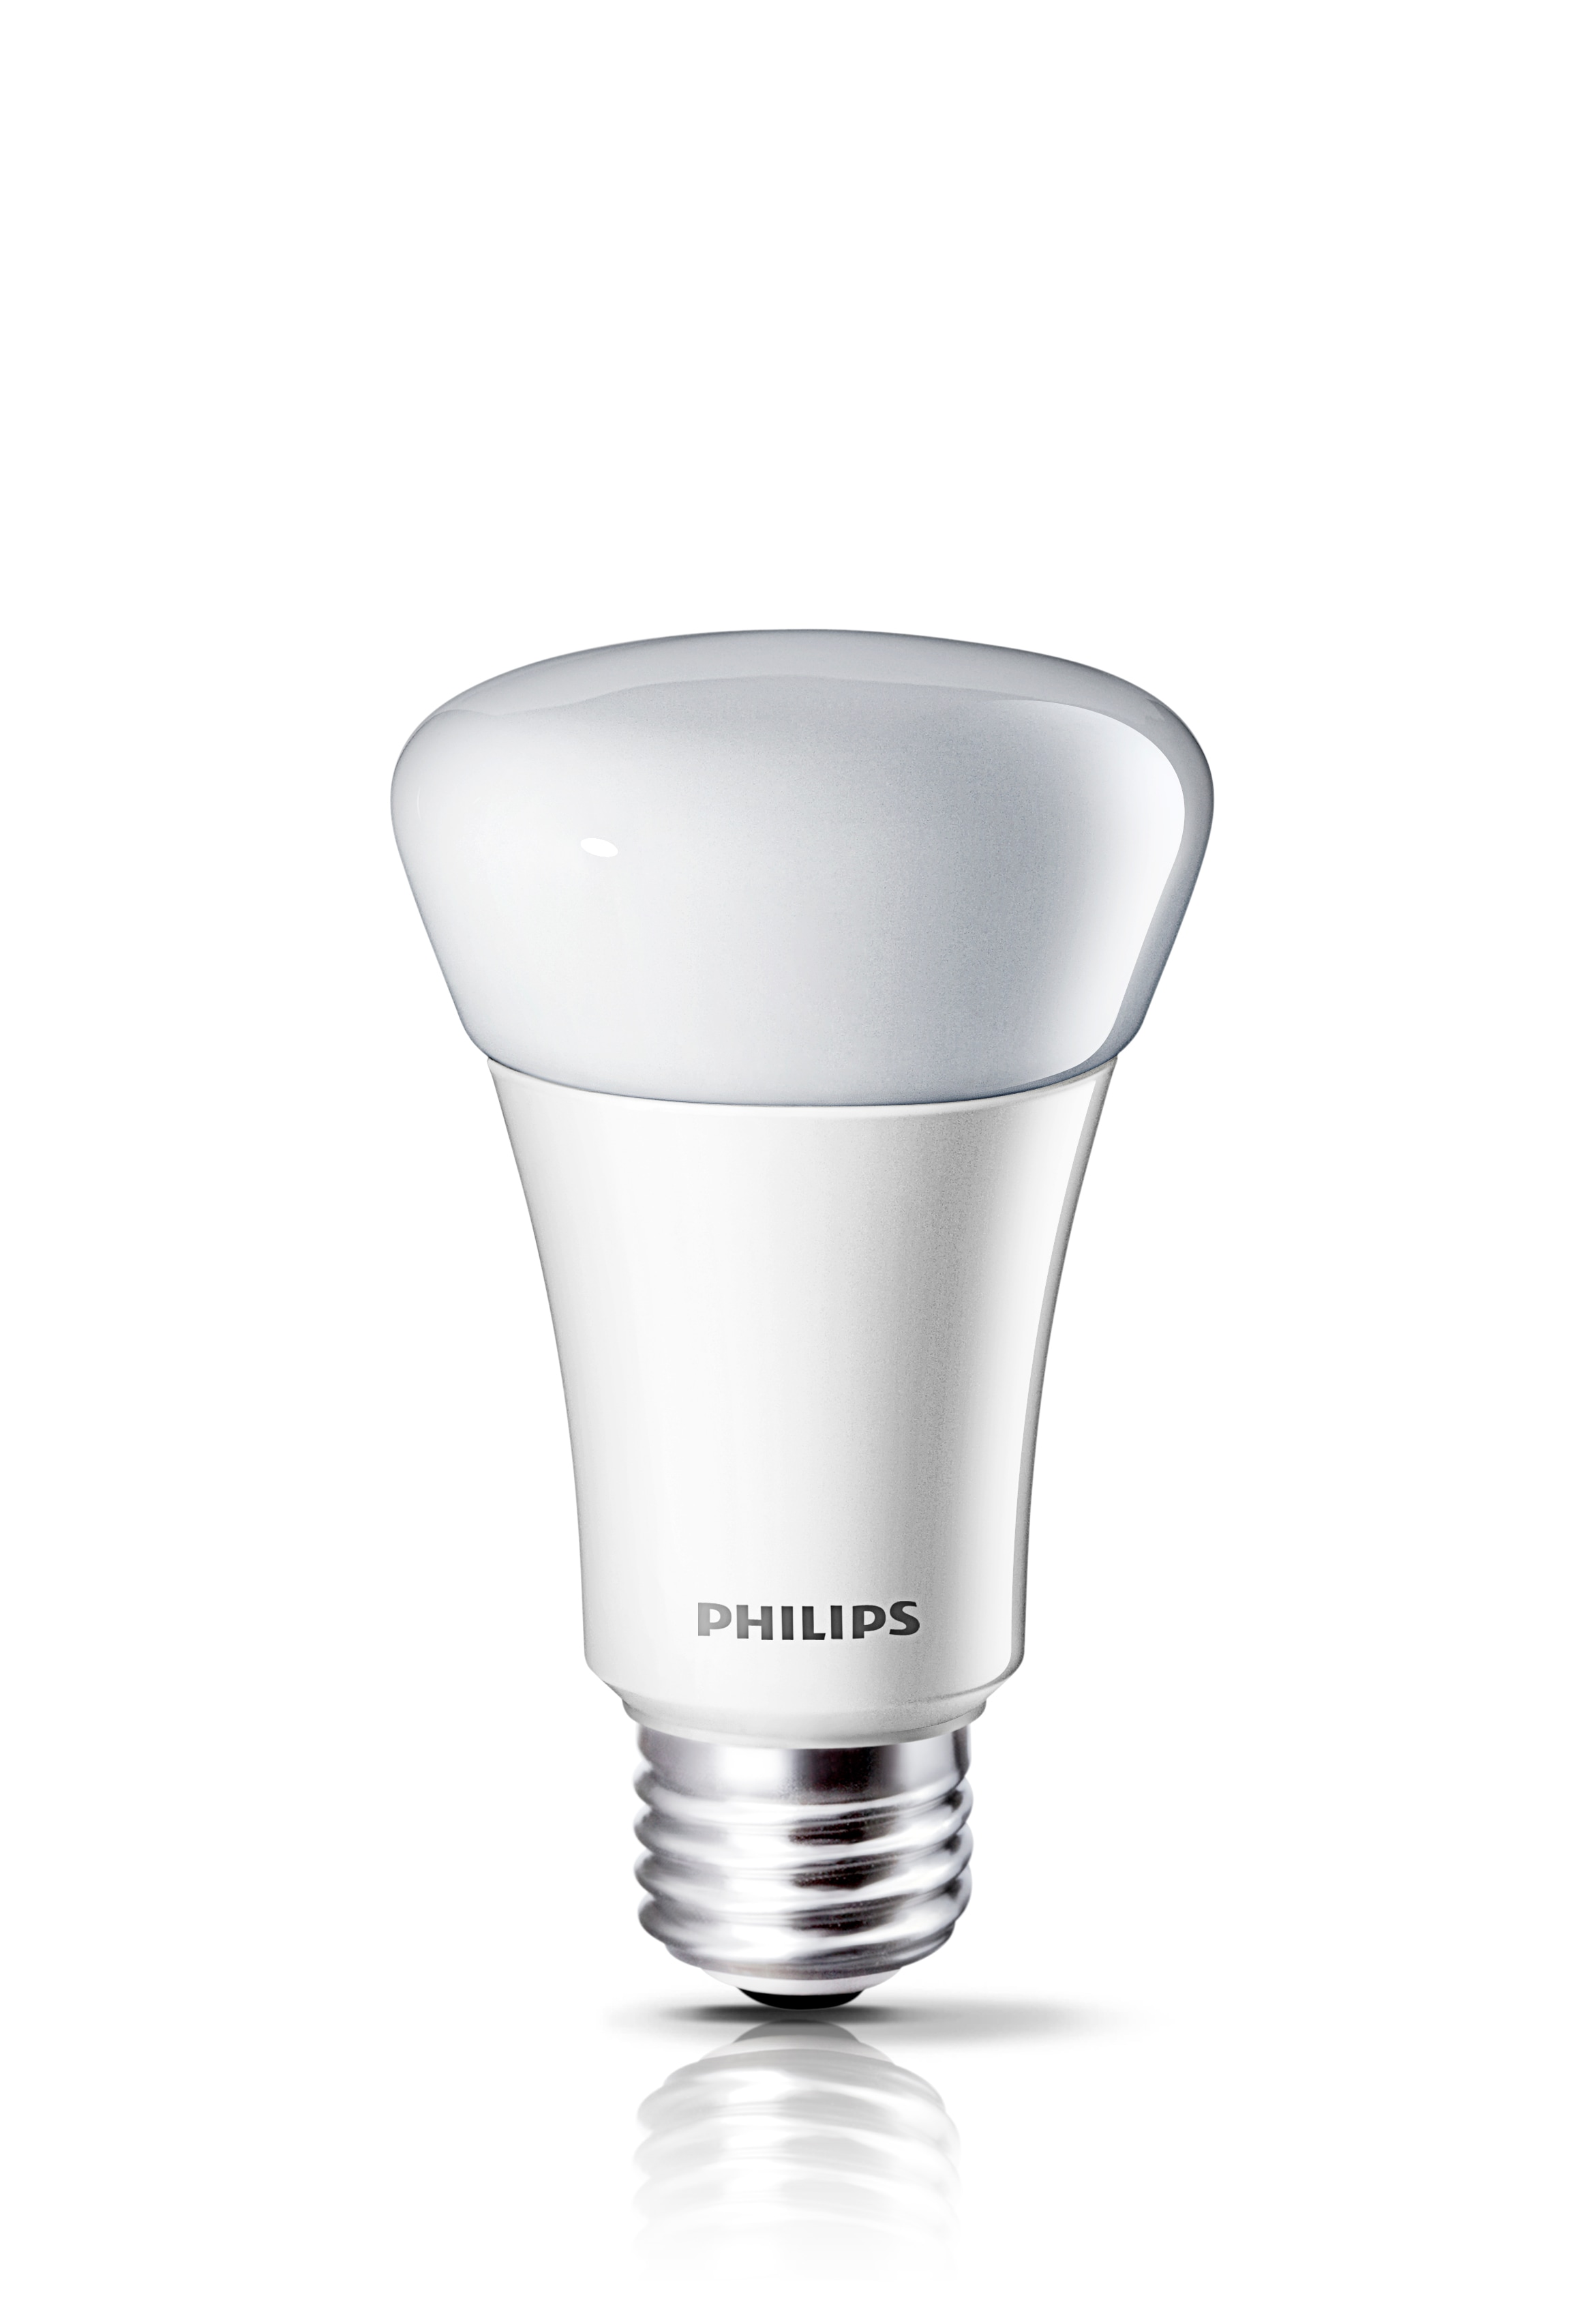 Led Lamps. Featured Deals In Led Bulbs. A19. Cordless Led Lamps ...:photo,Lighting